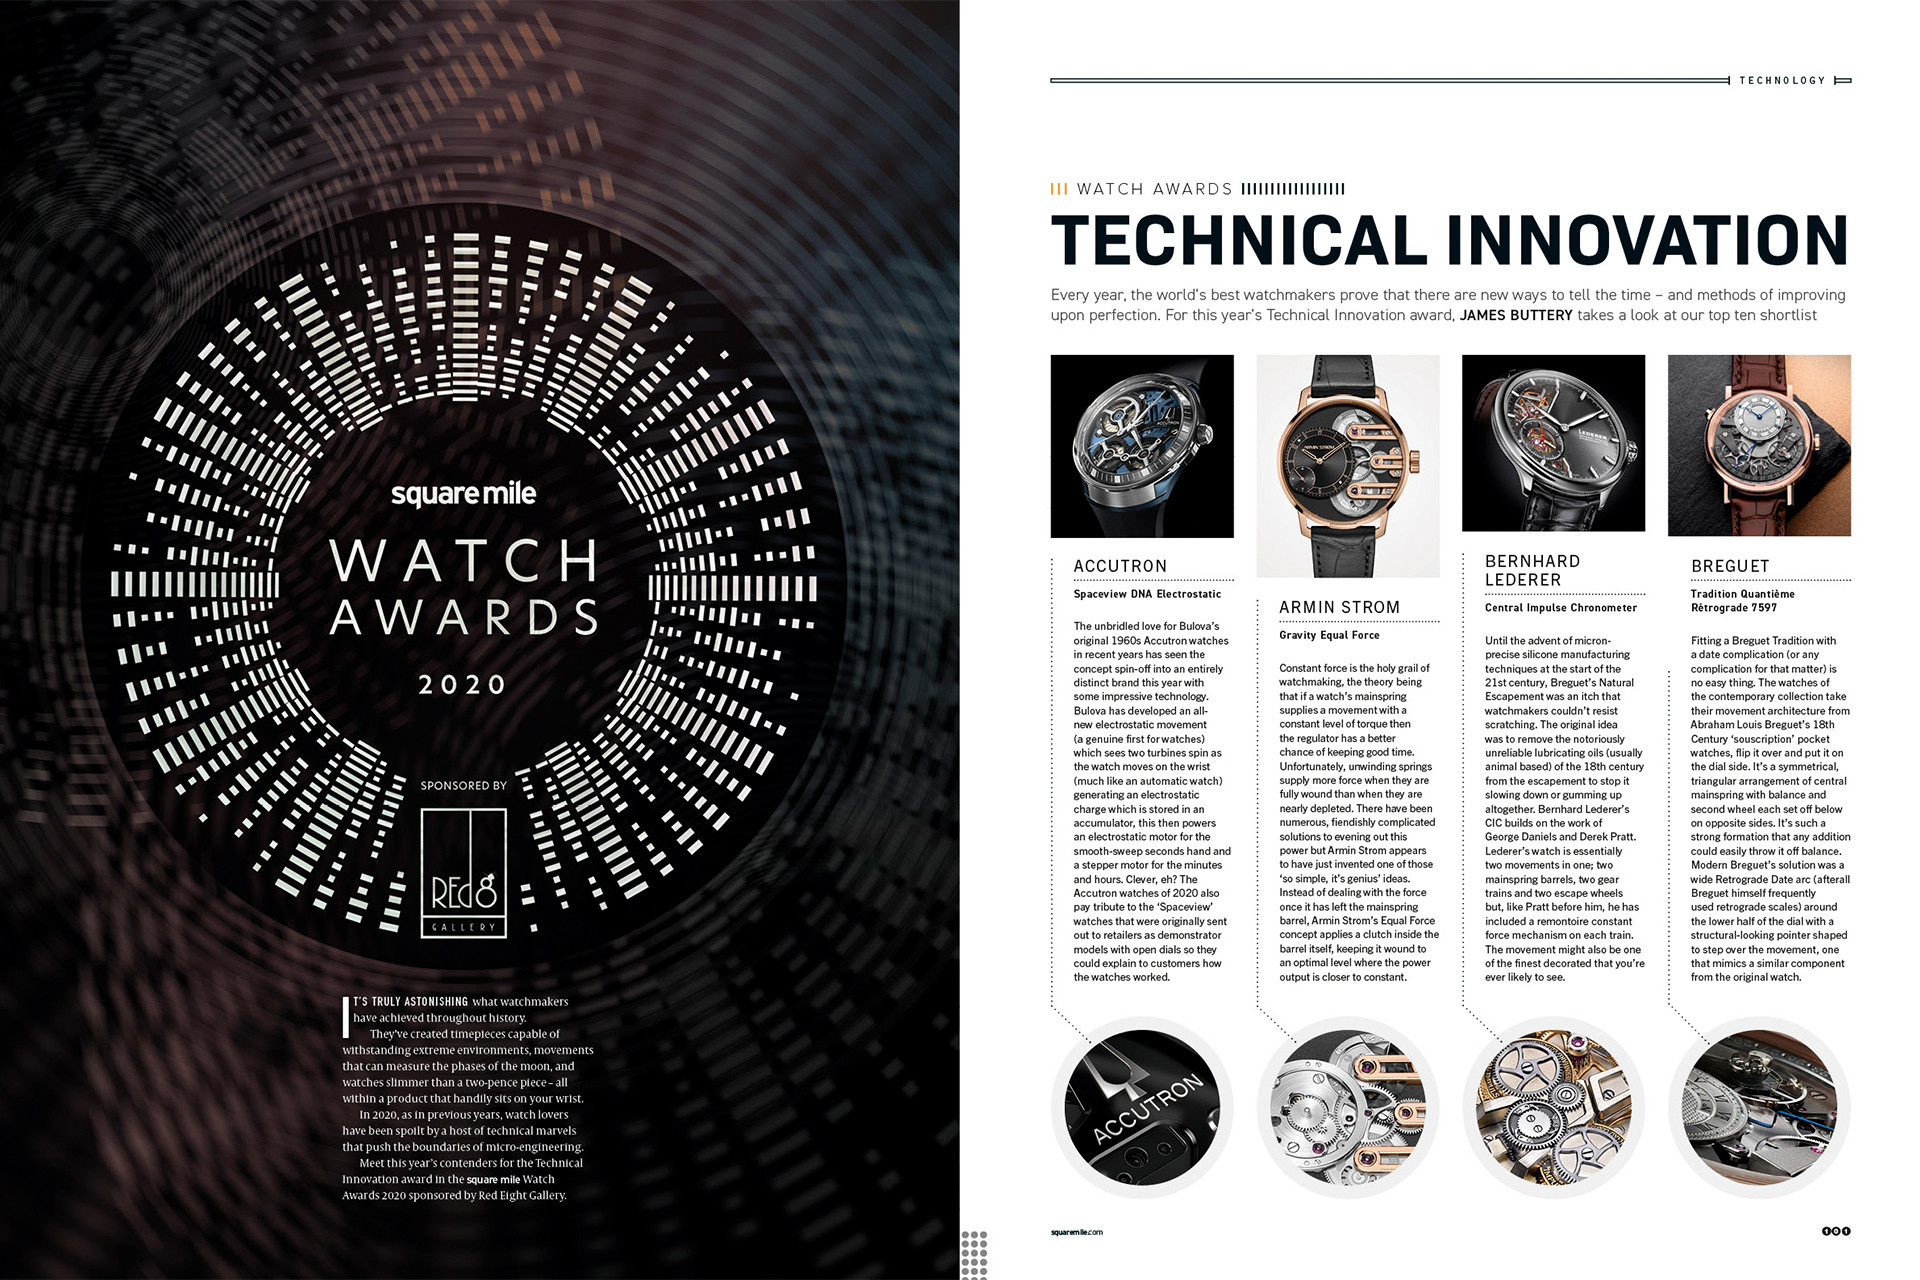 Square Mile Watch Awards Technical Innovation